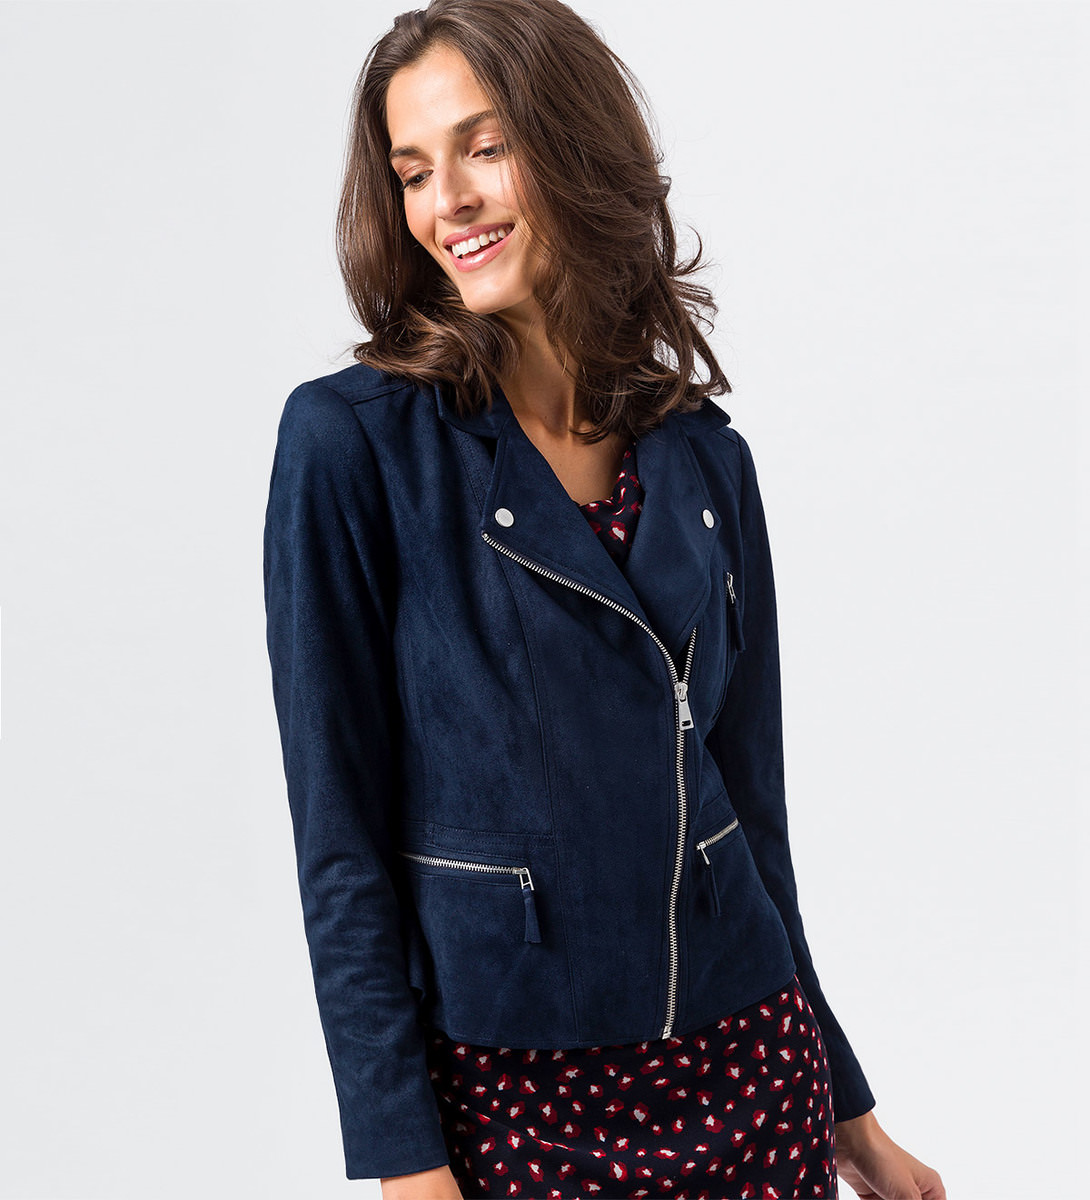 Jacke im Velours-Look in blue black